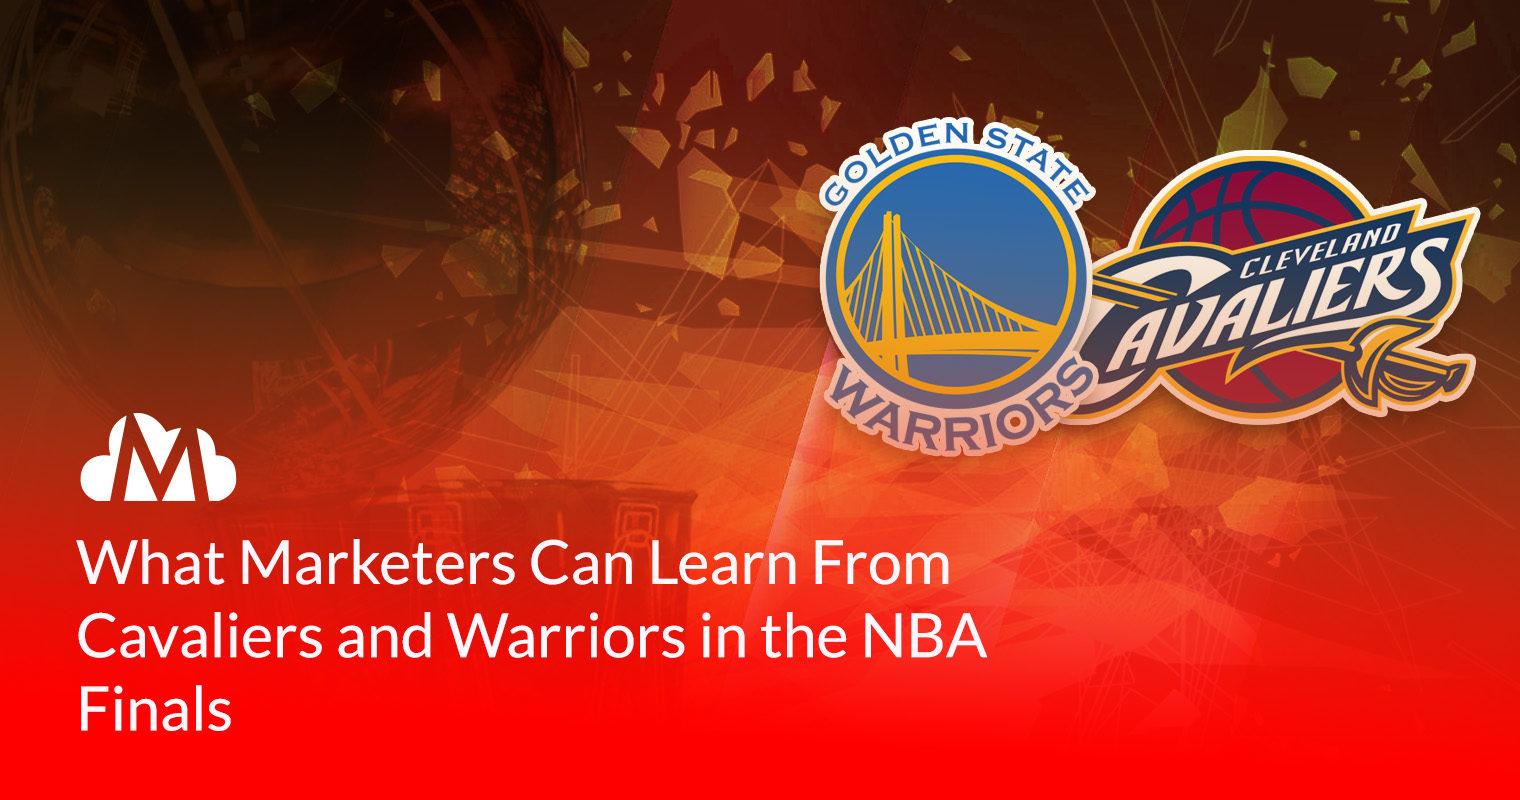 What Marketers Can Learn From Cavaliers and Warriors in the NBA Finals